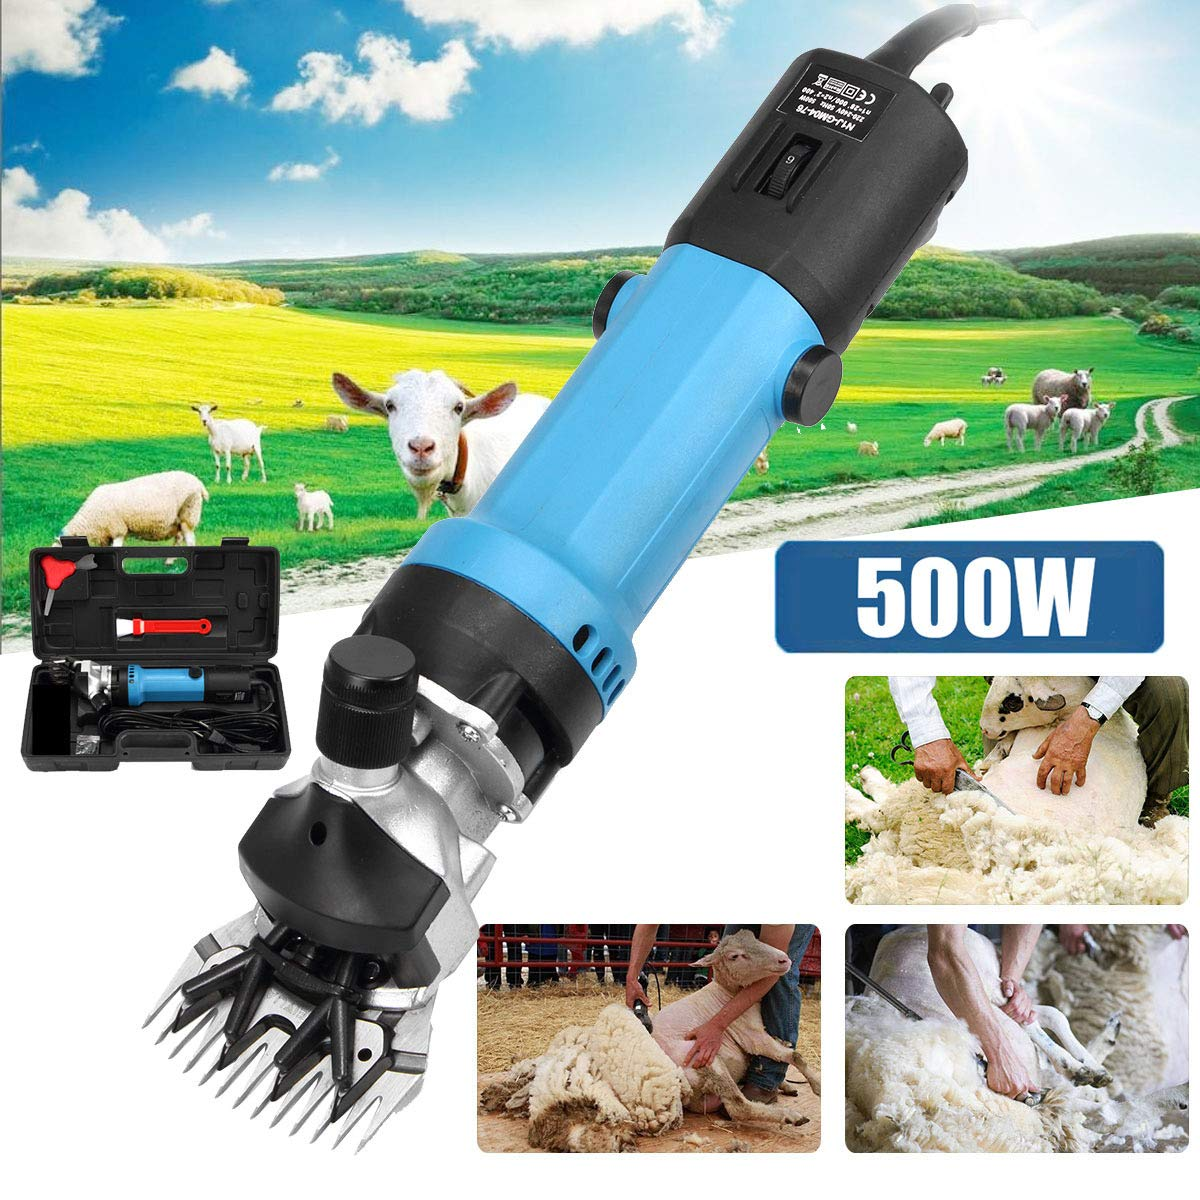 350 W Electric Sheep Shearing Clipper 6 Speed Adjustment Speed Wool Electric Sheep Shearing for Farm Livestock